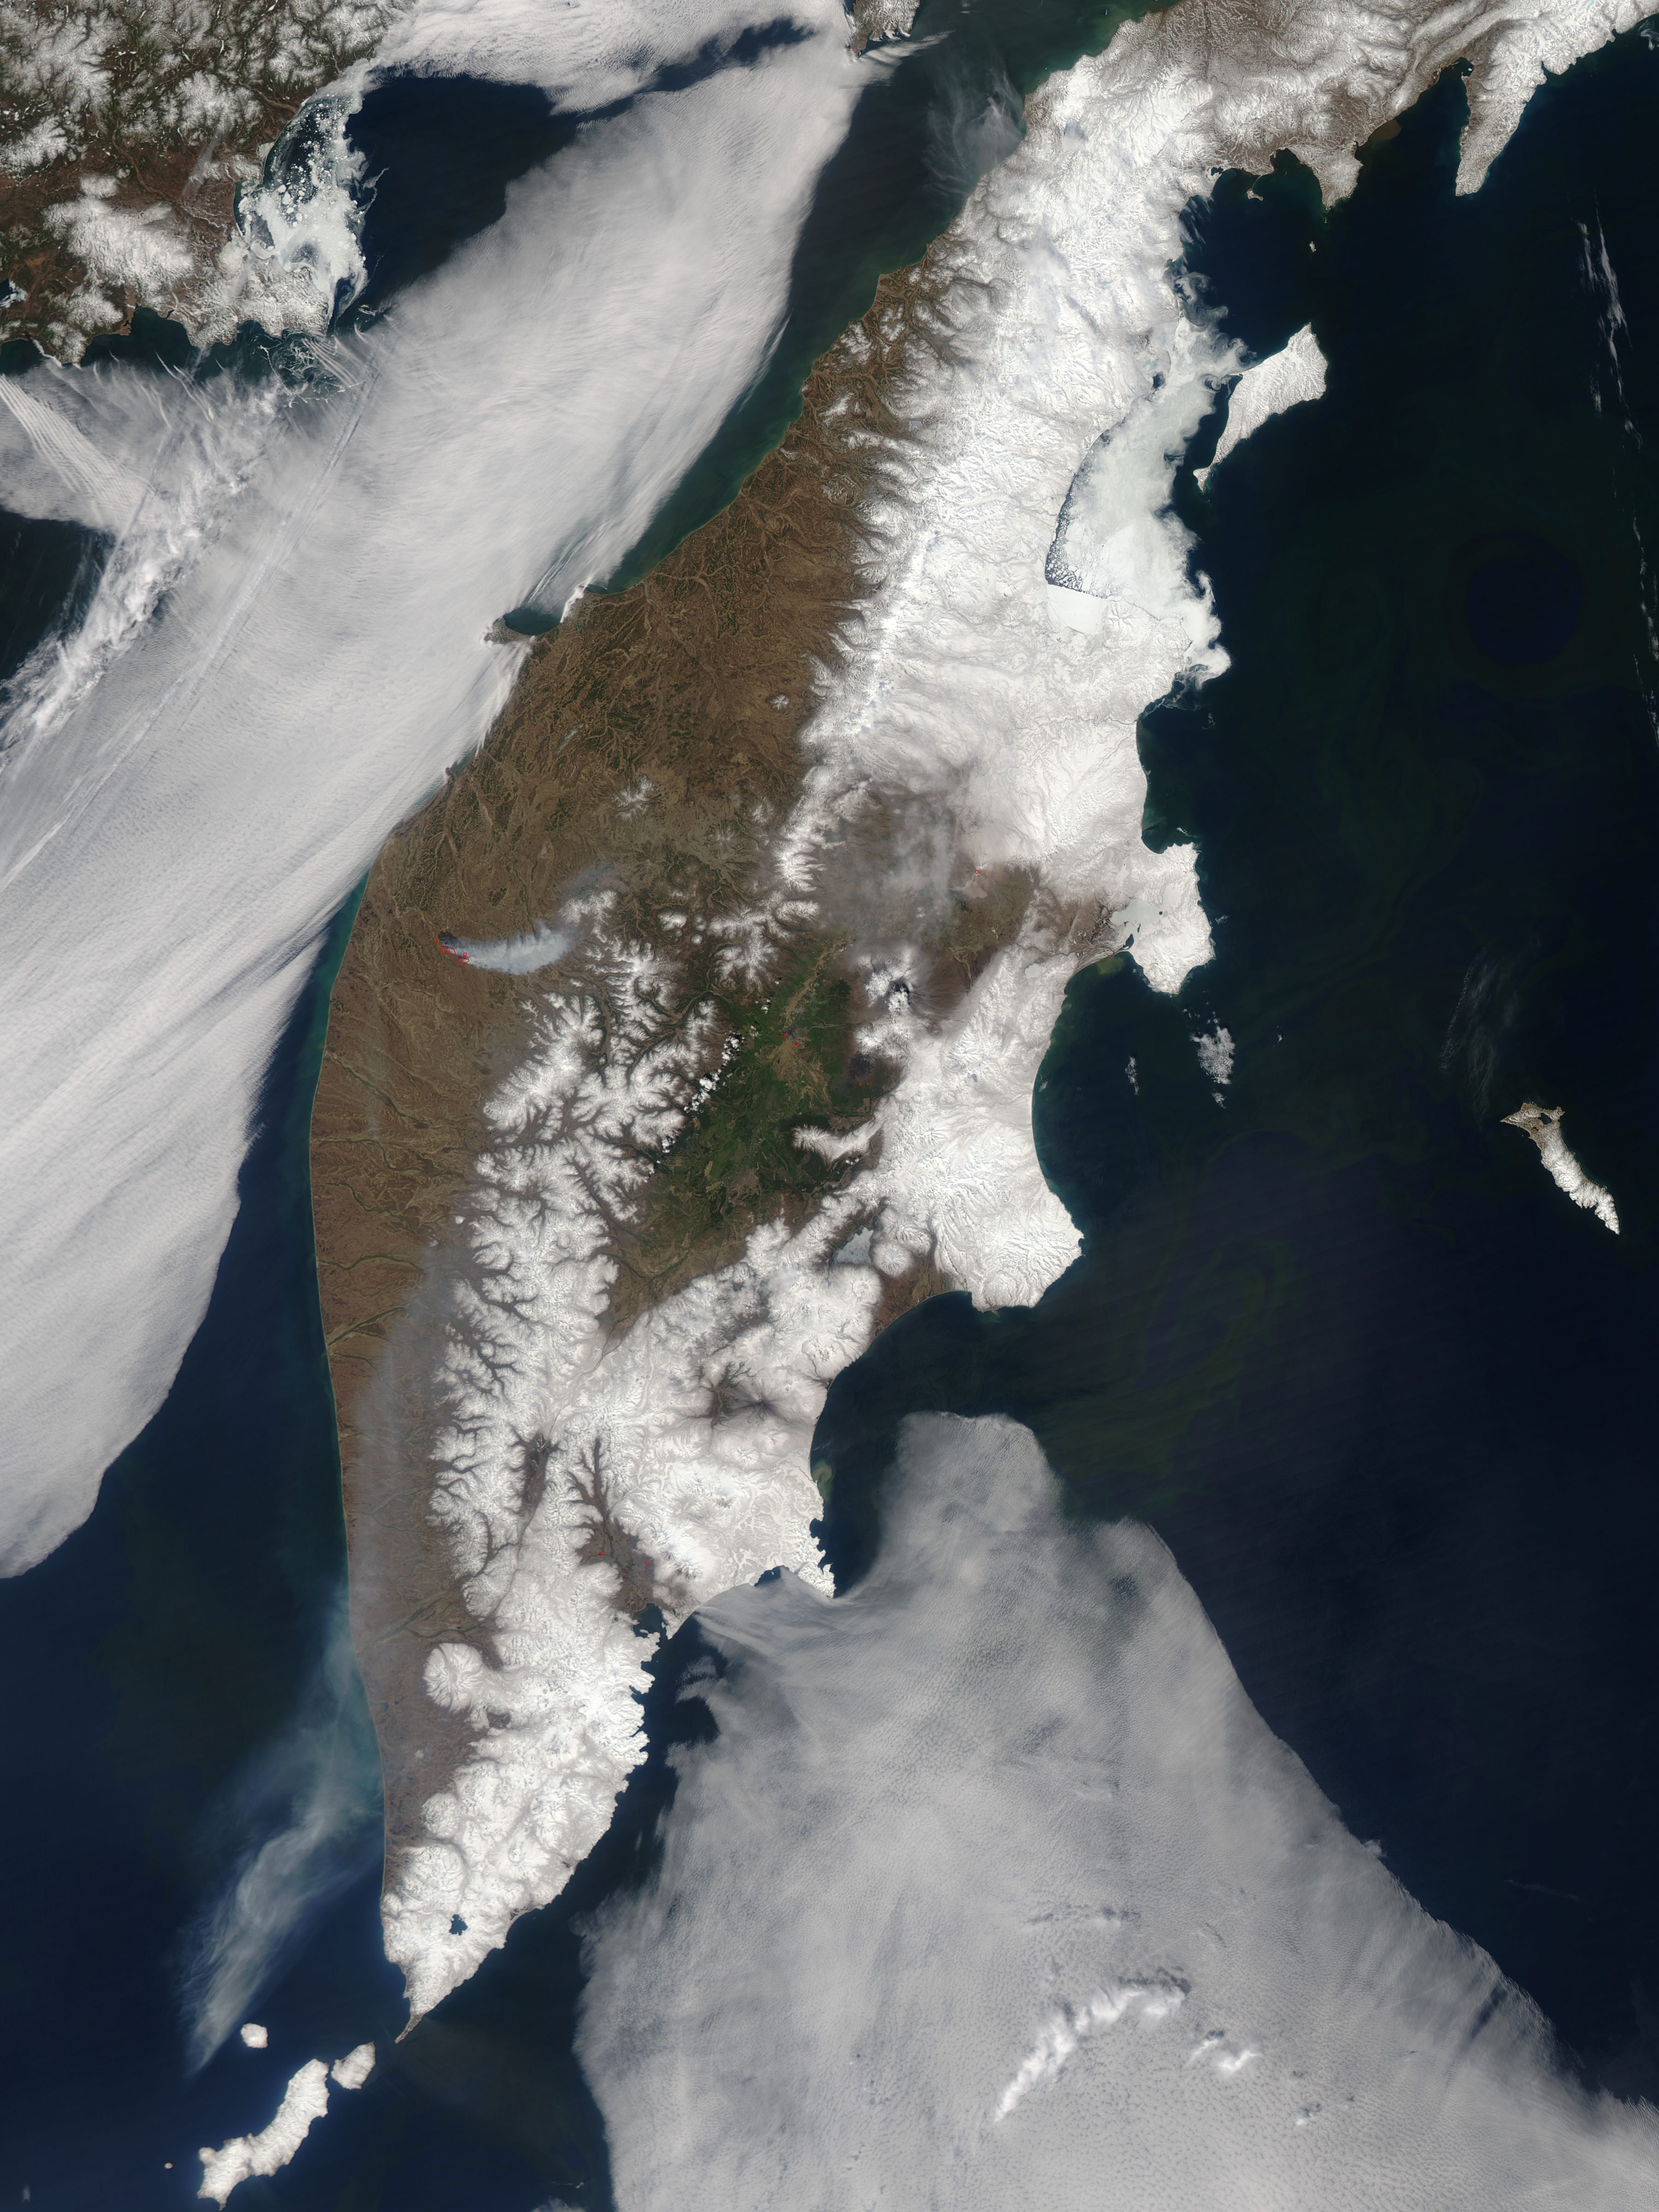 Fires and smoke on Kamchatka Peninsula, Eastern Russia - related image preview